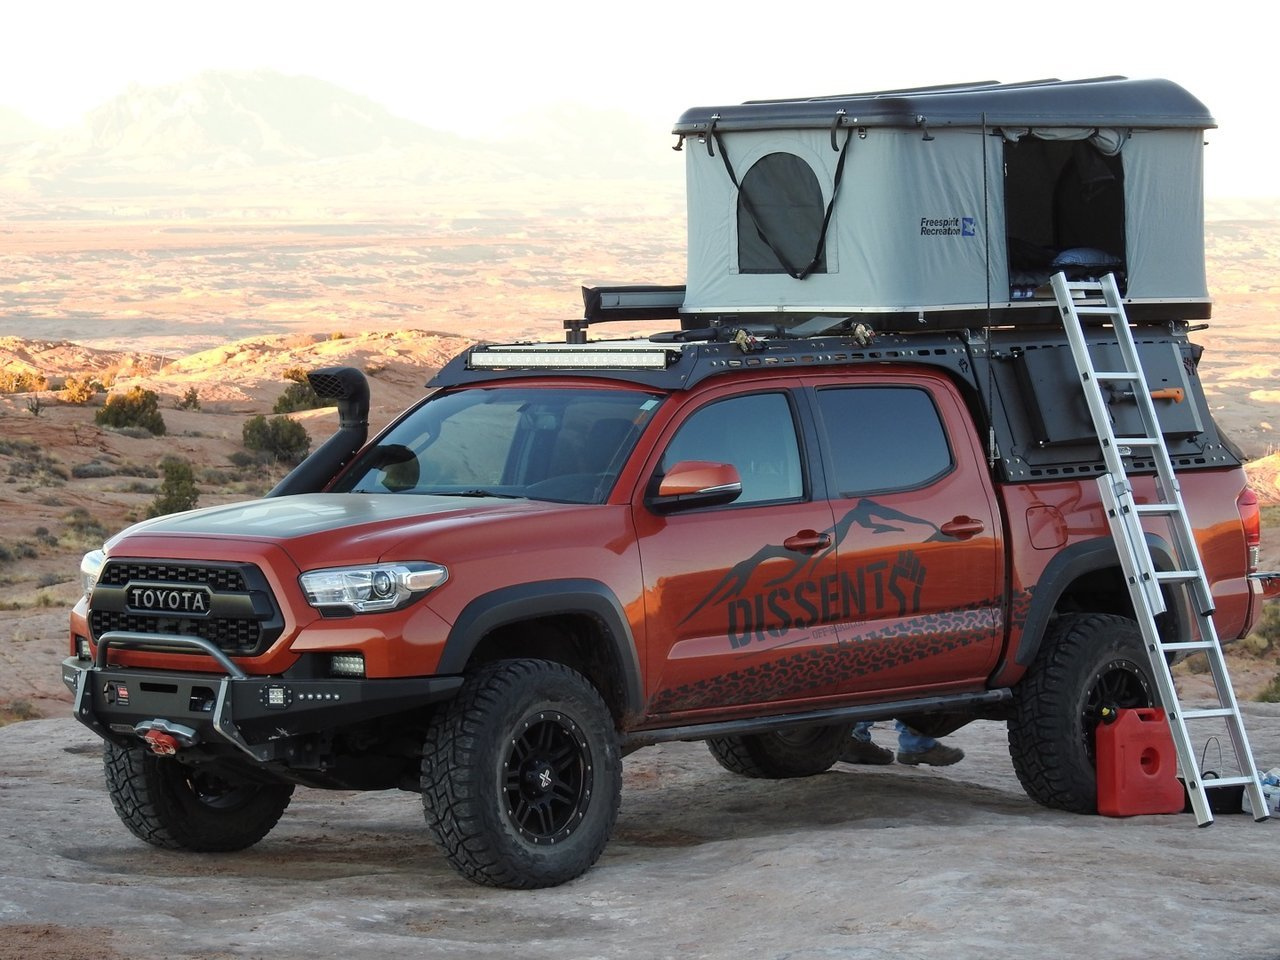 Over Canopy Modular Bed Rack Intrest Tacoma World